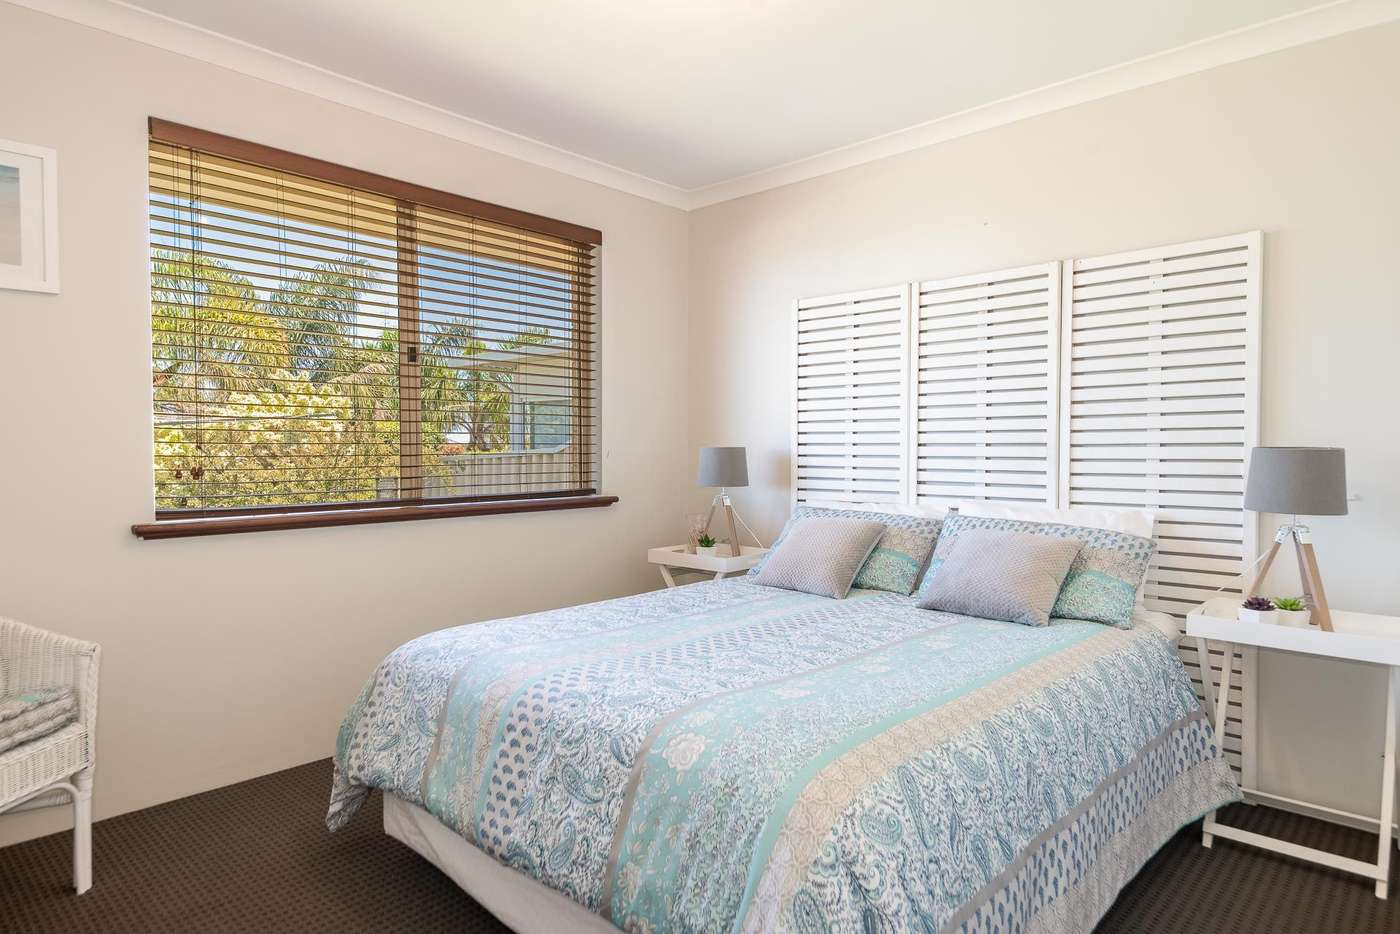 Sixth view of Homely house listing, 17 Barnes Avenue, Australind WA 6233